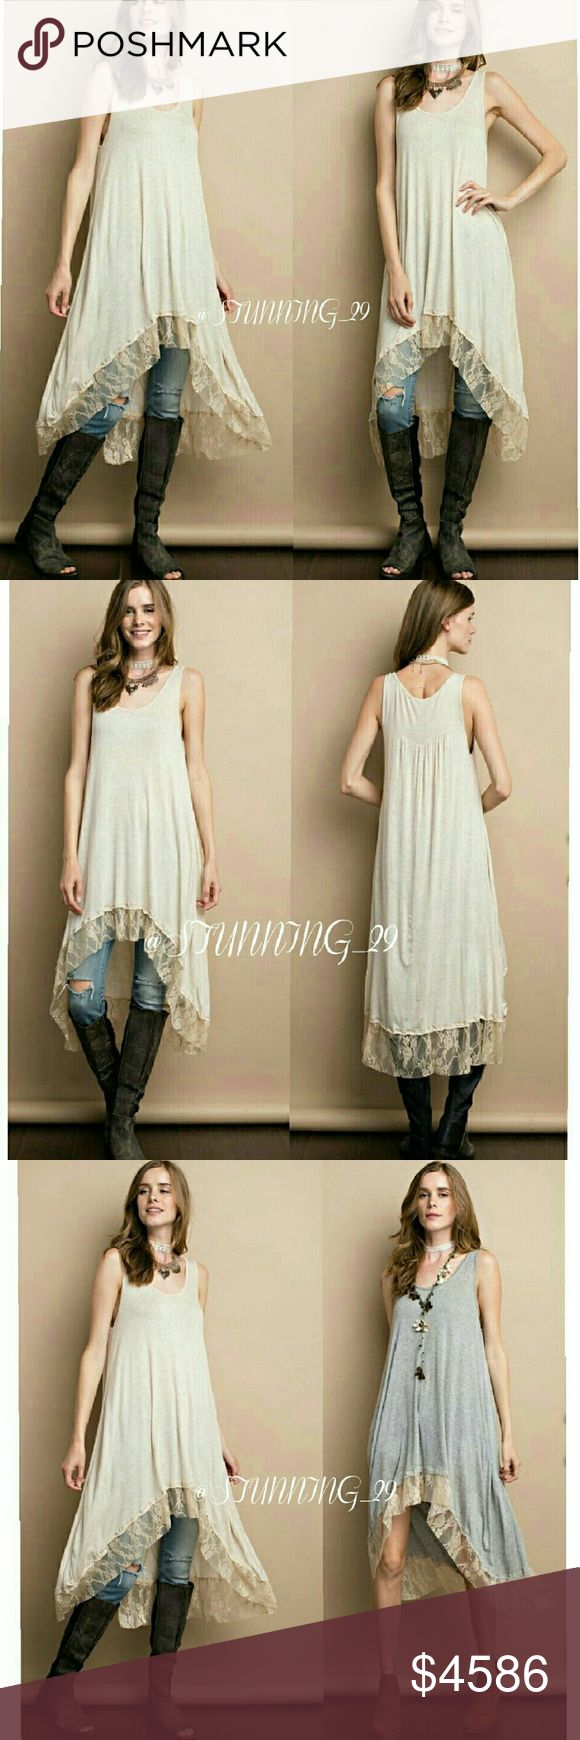 🆕HIGH LOW LACE RUFFLE HEM TUNIC **ARRIVING SOON ON MONDAY 1/30** GORGEOUS  SOFT & LIGHT WEIGHT 2 TONE DROP NEEDLE FABRIC TUNIC HIGH LOW TANK WITH LACE RUFFLE HEM. THIS LISTING IS FOR THE OATMEAL COLOR.  SO CUTE TO WEAR ALONE OR LAYER MULTIPLE WAYS- JUST AS THE MODEL- W/ LEGGINGS ETC  95% RAYON /5%SPANDEX. MADE IN THE USA . PRICED HIGH FOR A SHIP DISCOUNT & MORE INFO AVA WHEN THESE BEAUTIES ARRIVE Stunning_29  Tops